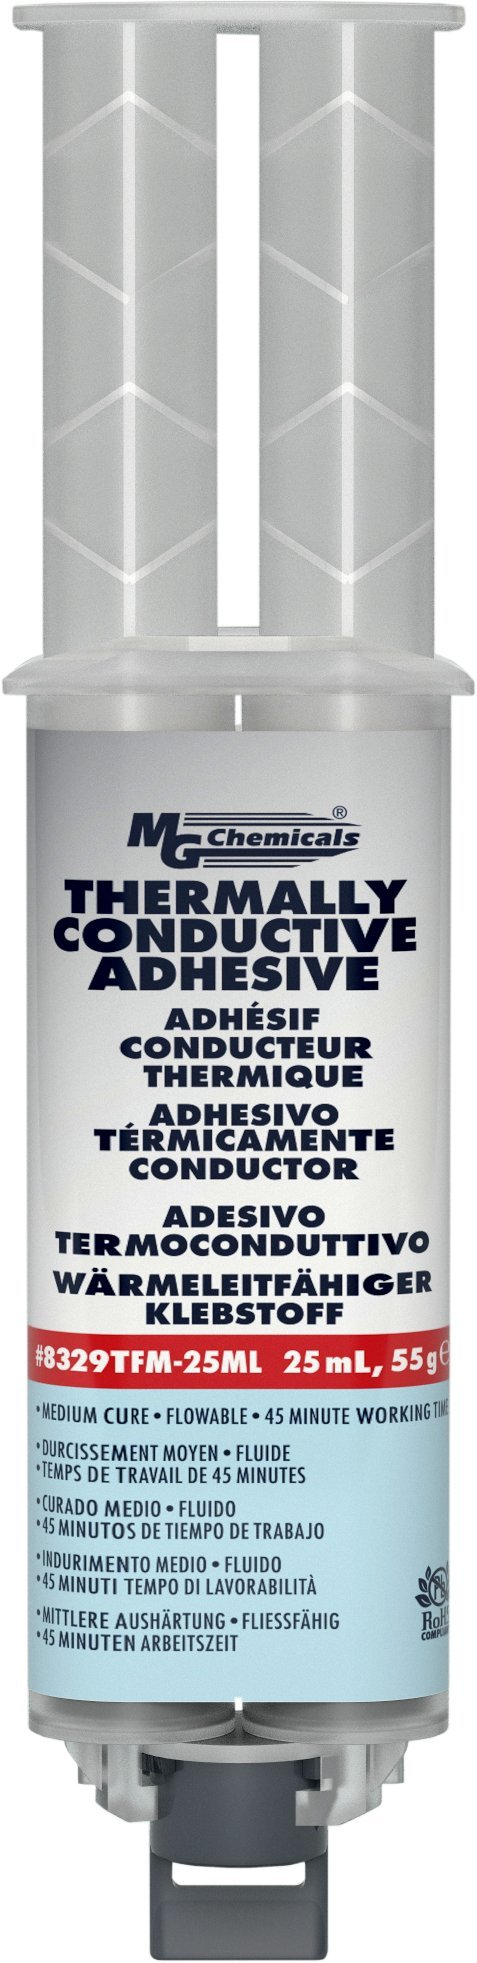 MG Chemicals 8329TFM Thermally Conductive Adhesive, Medium Cure, 25 milliliters Dual Dispenser